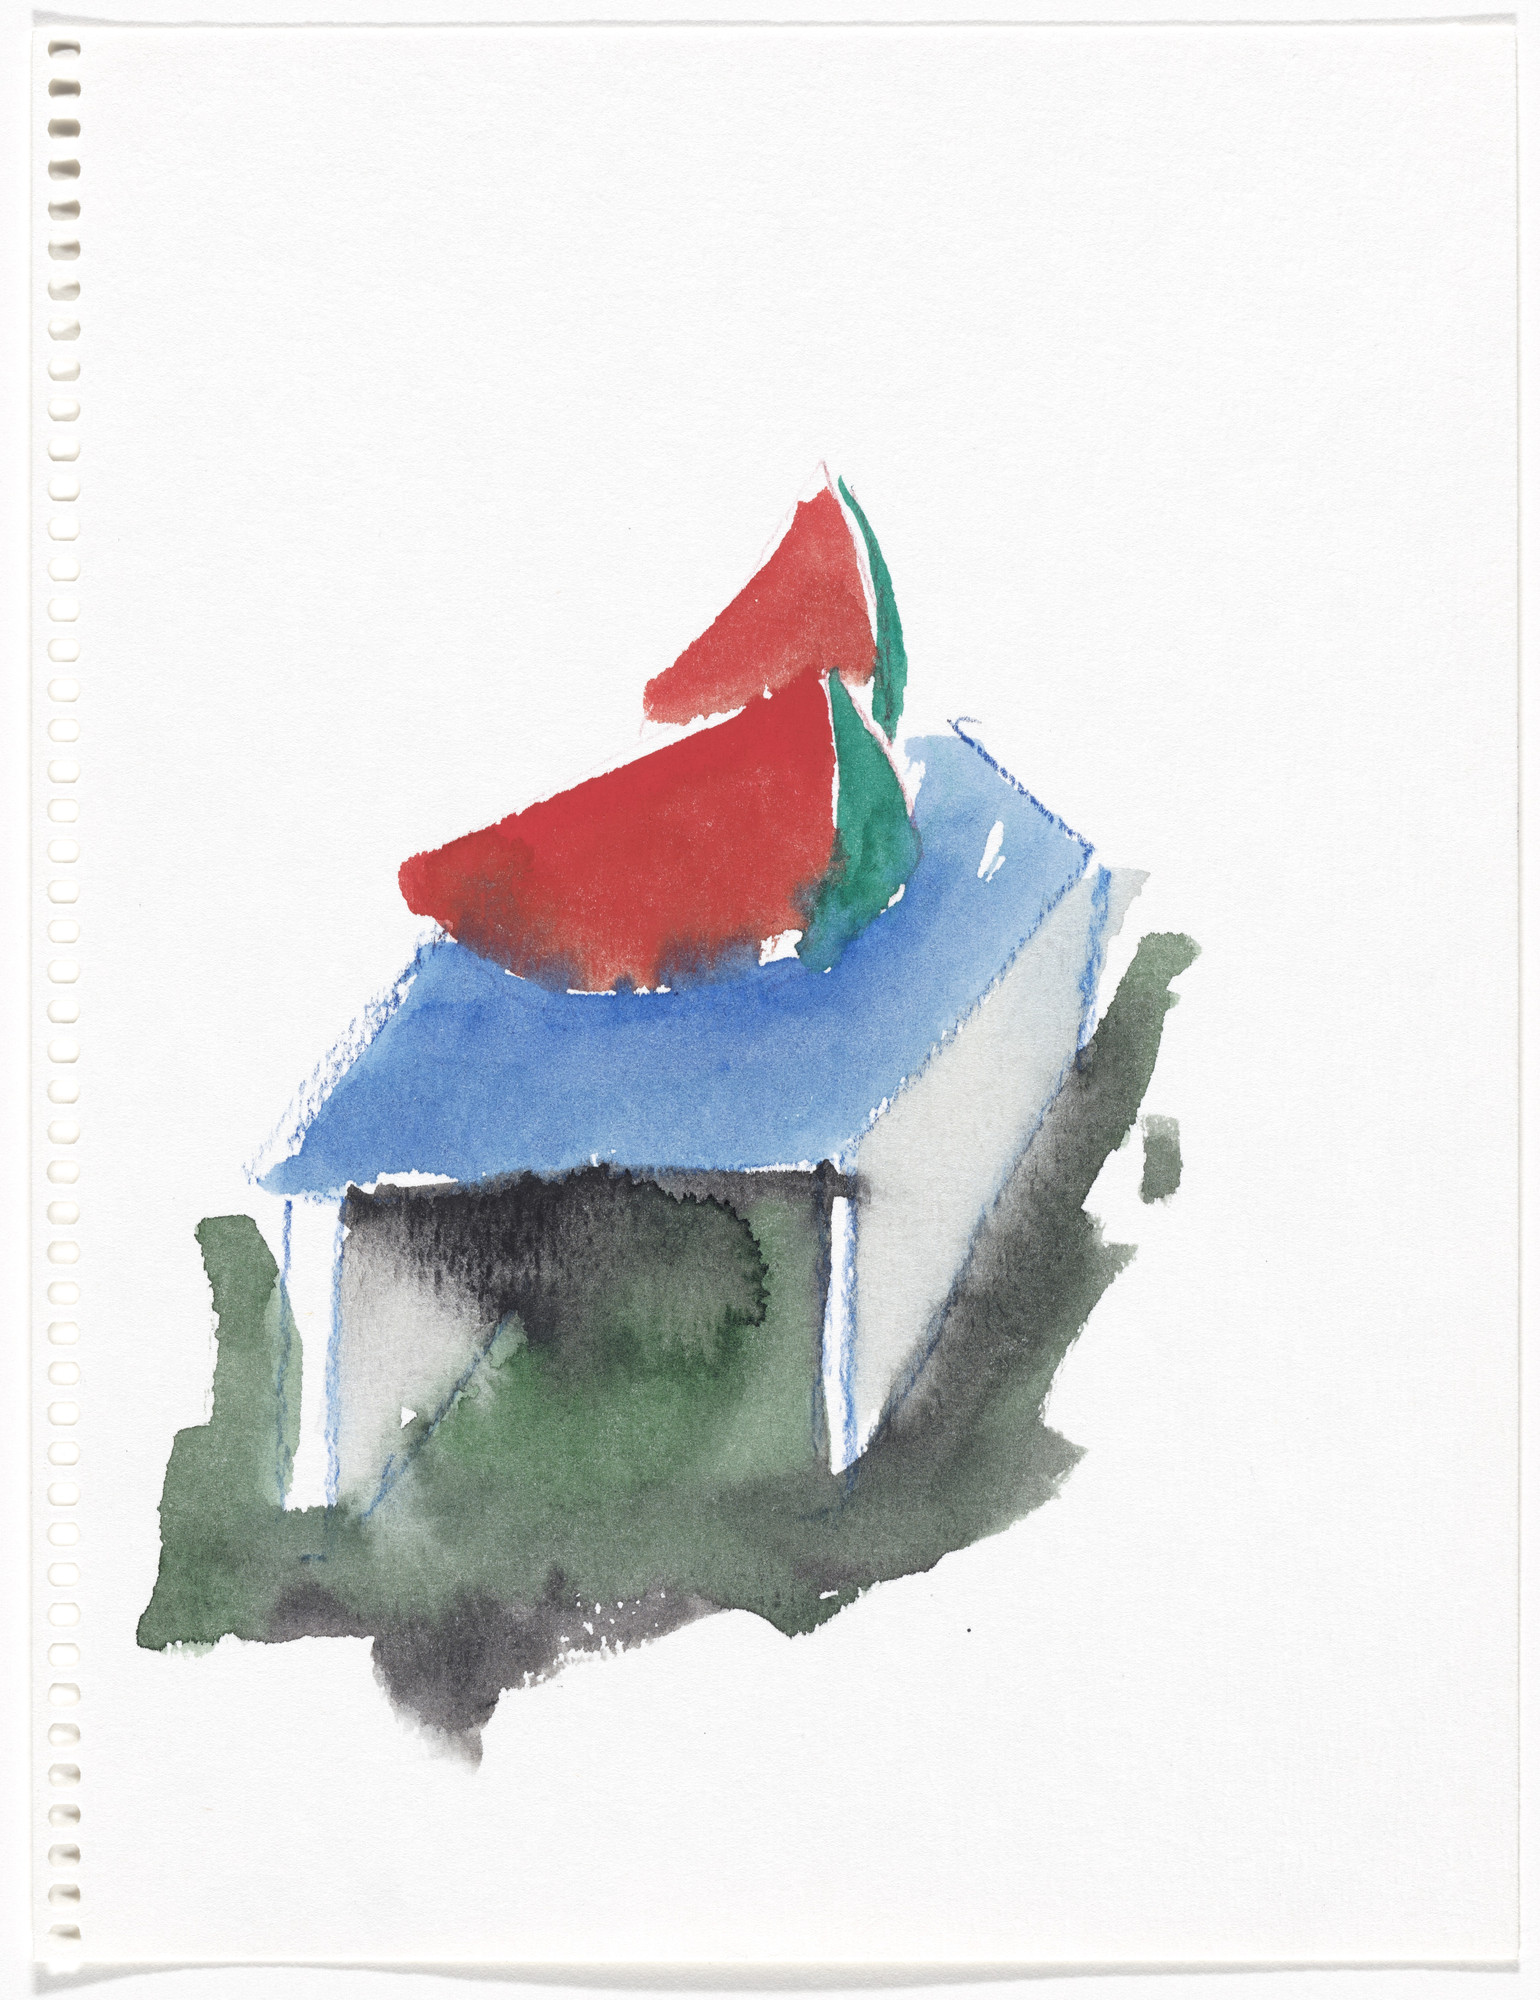 Thomas Schütte. Untitled from Aquarellen (Watercolors). 1987